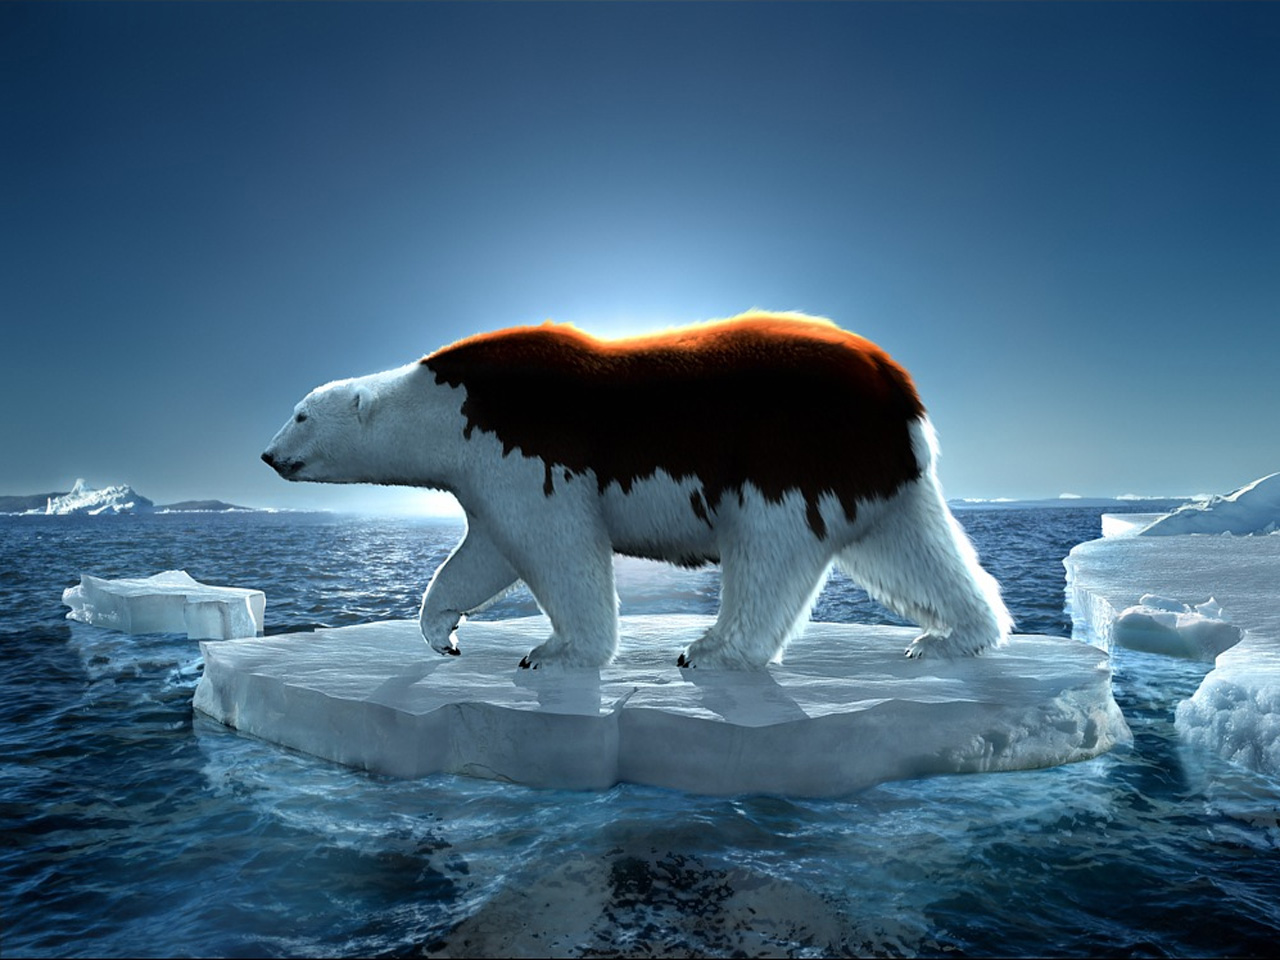 greenpeace polar bear 1280 x 960pix wallpaper nature 3d. Black Bedroom Furniture Sets. Home Design Ideas